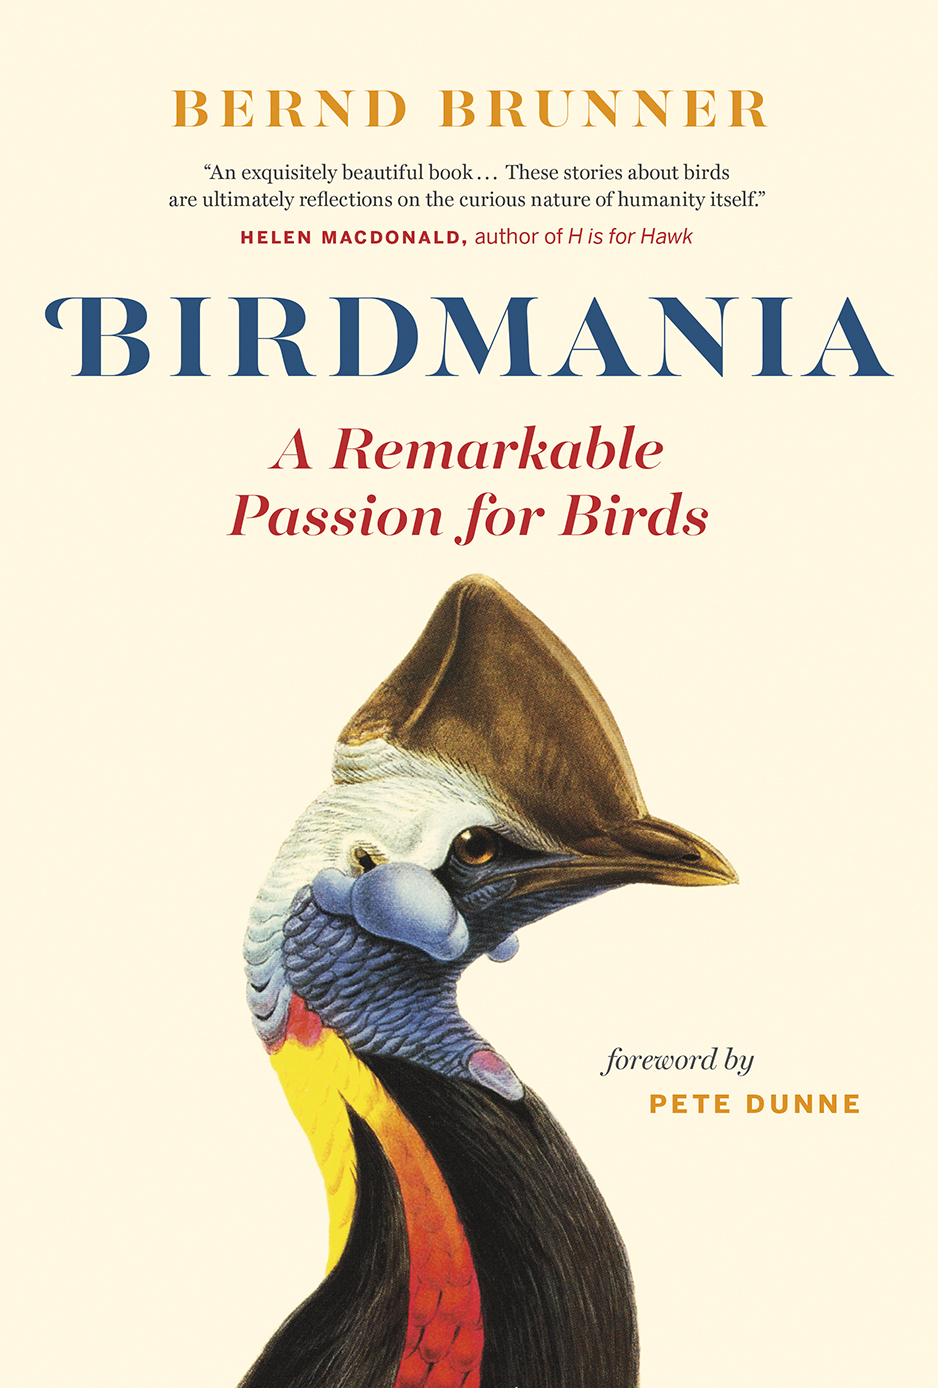 Birdmania A Remarkable Passion for Birds